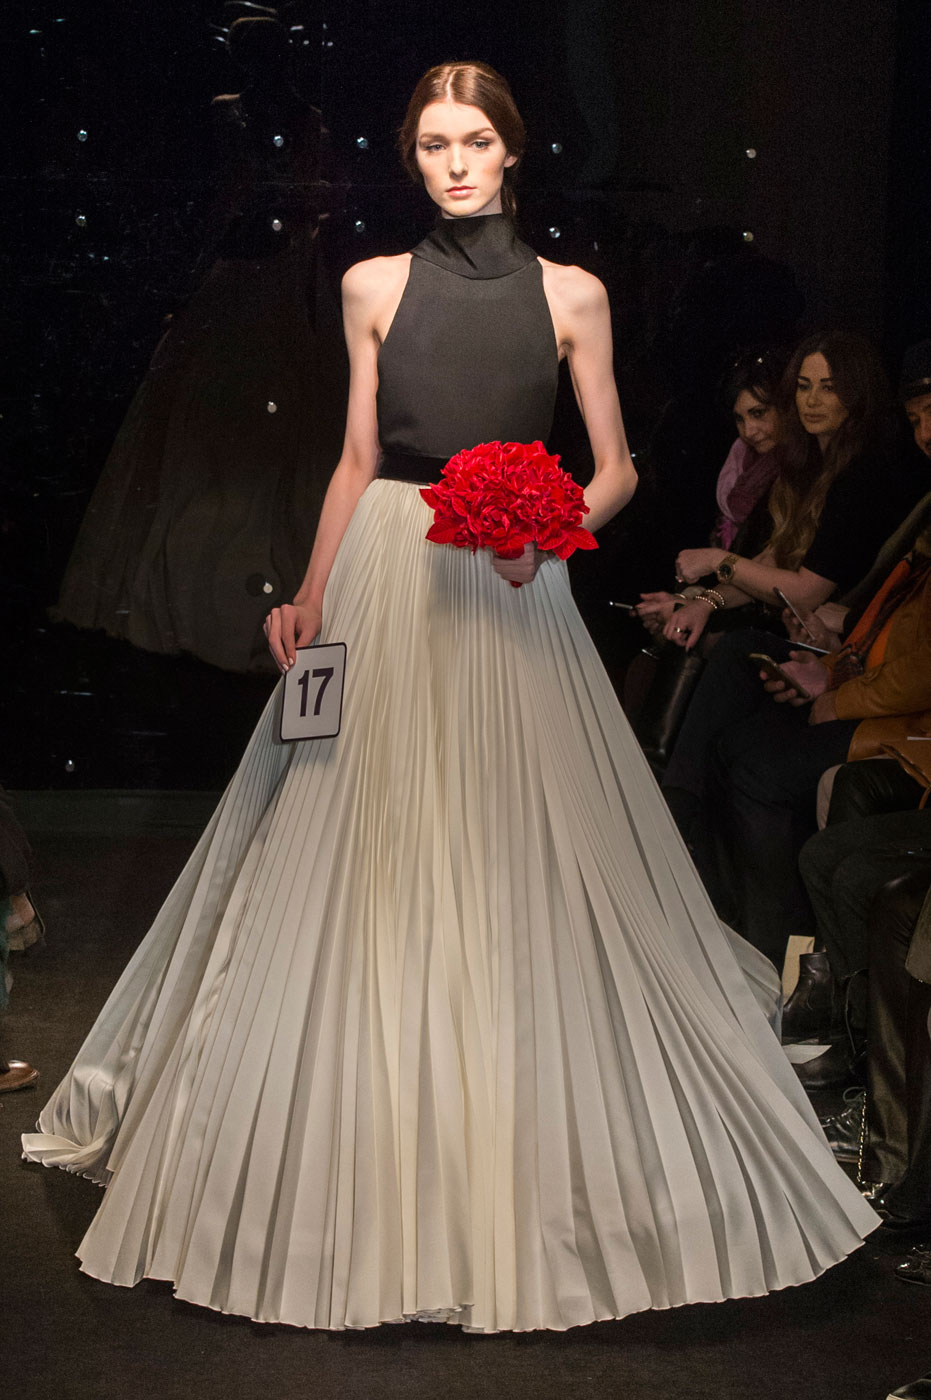 St phane rolland haute couture spring summer 2016 for American haute couture designers